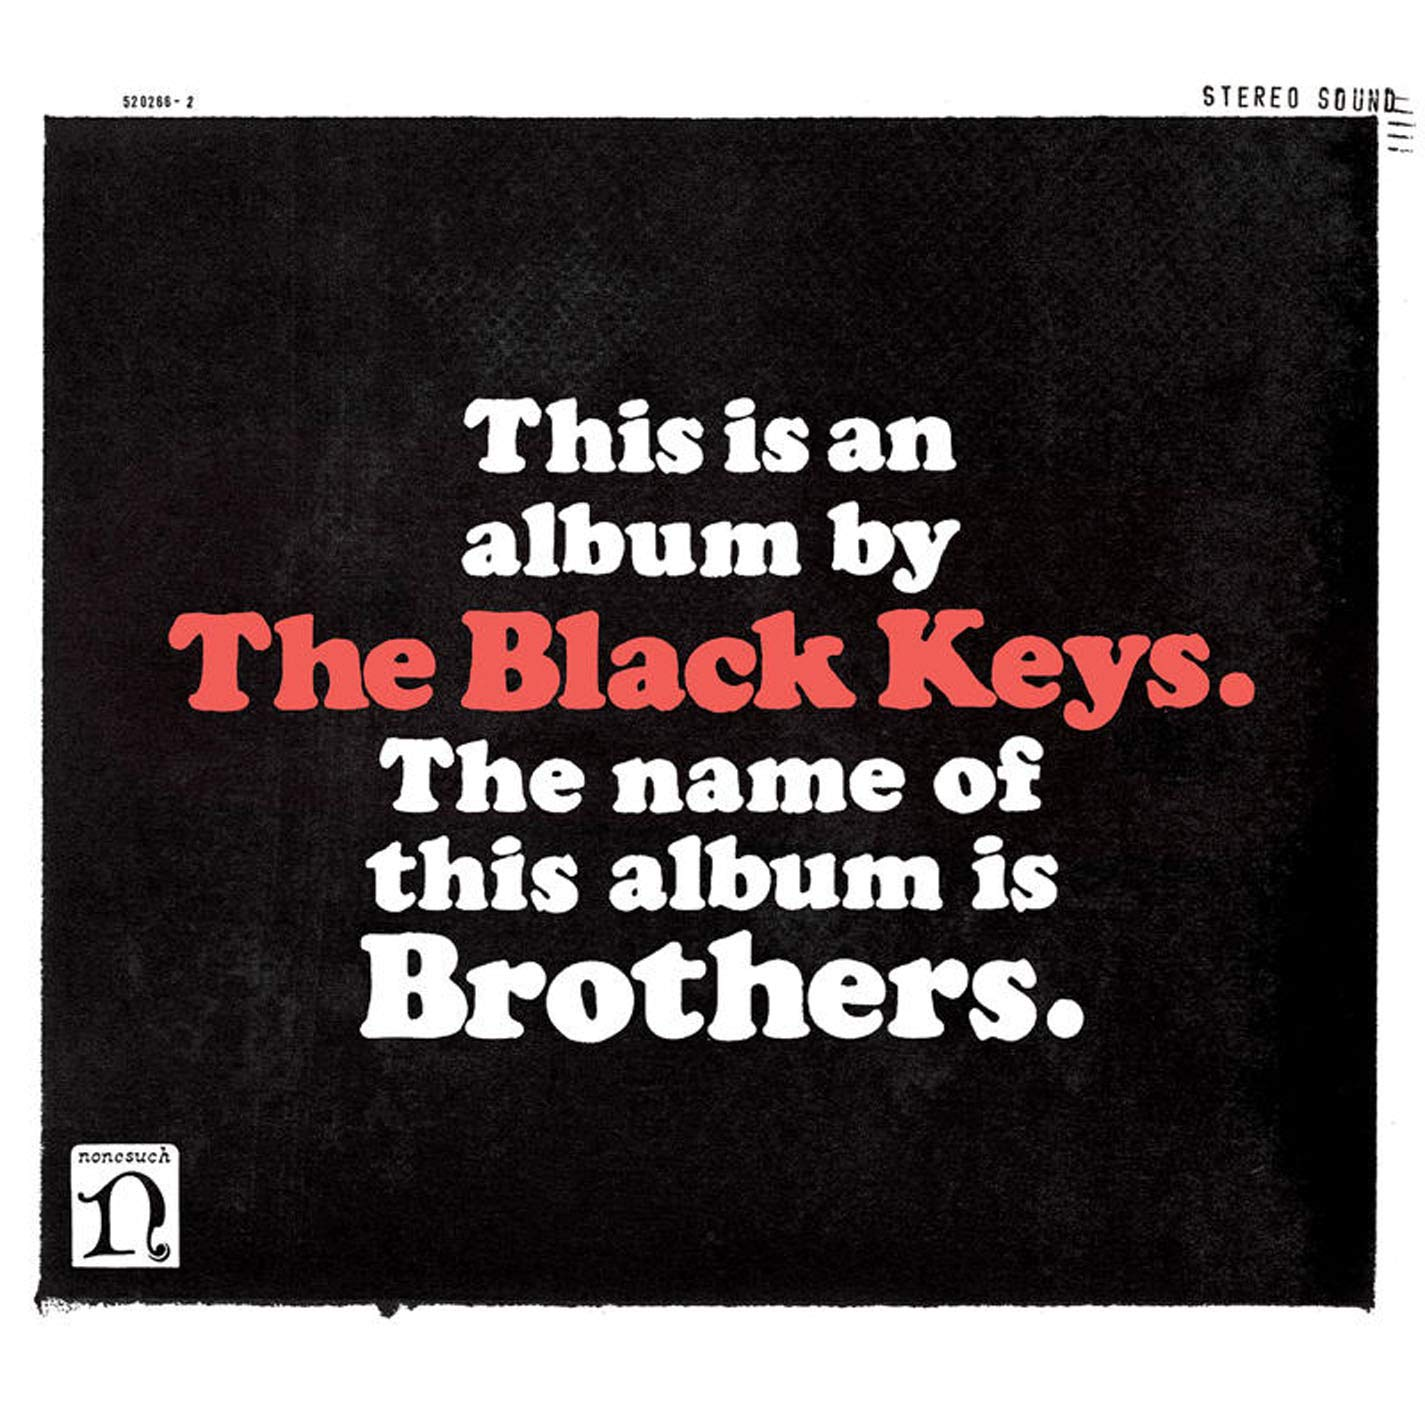 The Black Keys Blothers album 2010 copertina